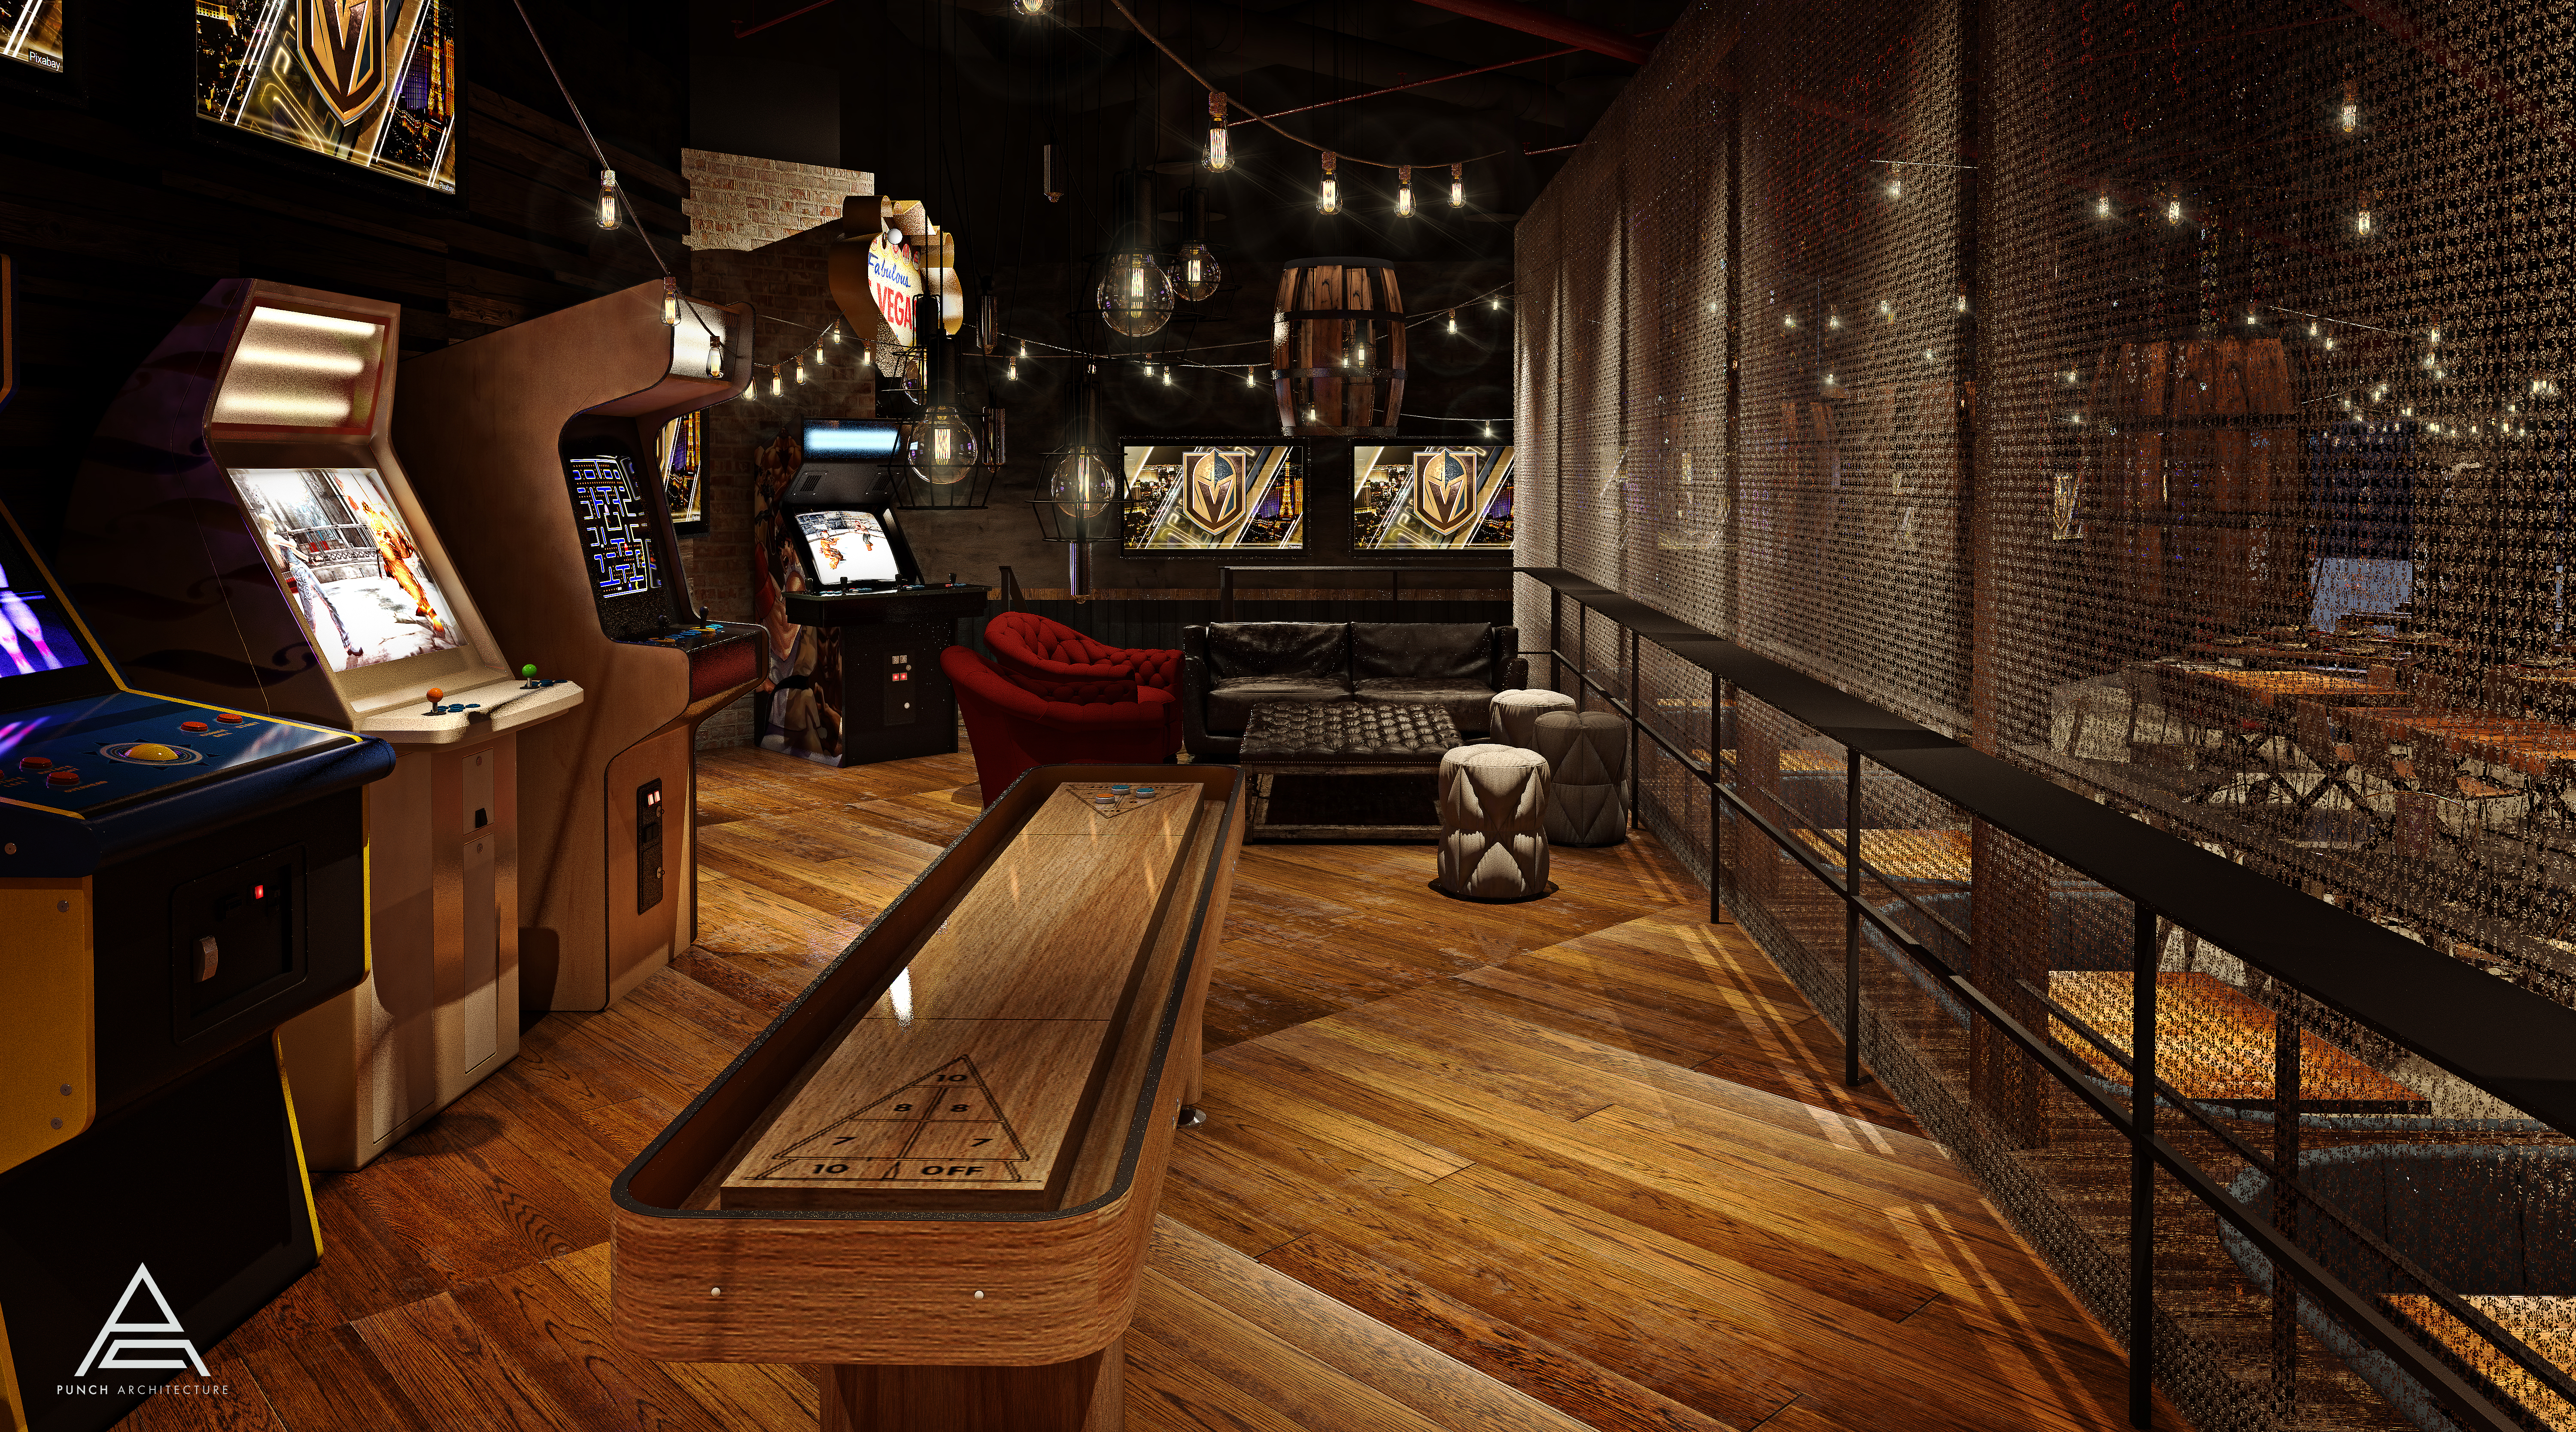 Excalibur Lands a Rustic Sports Bar and Restaurant This Fall